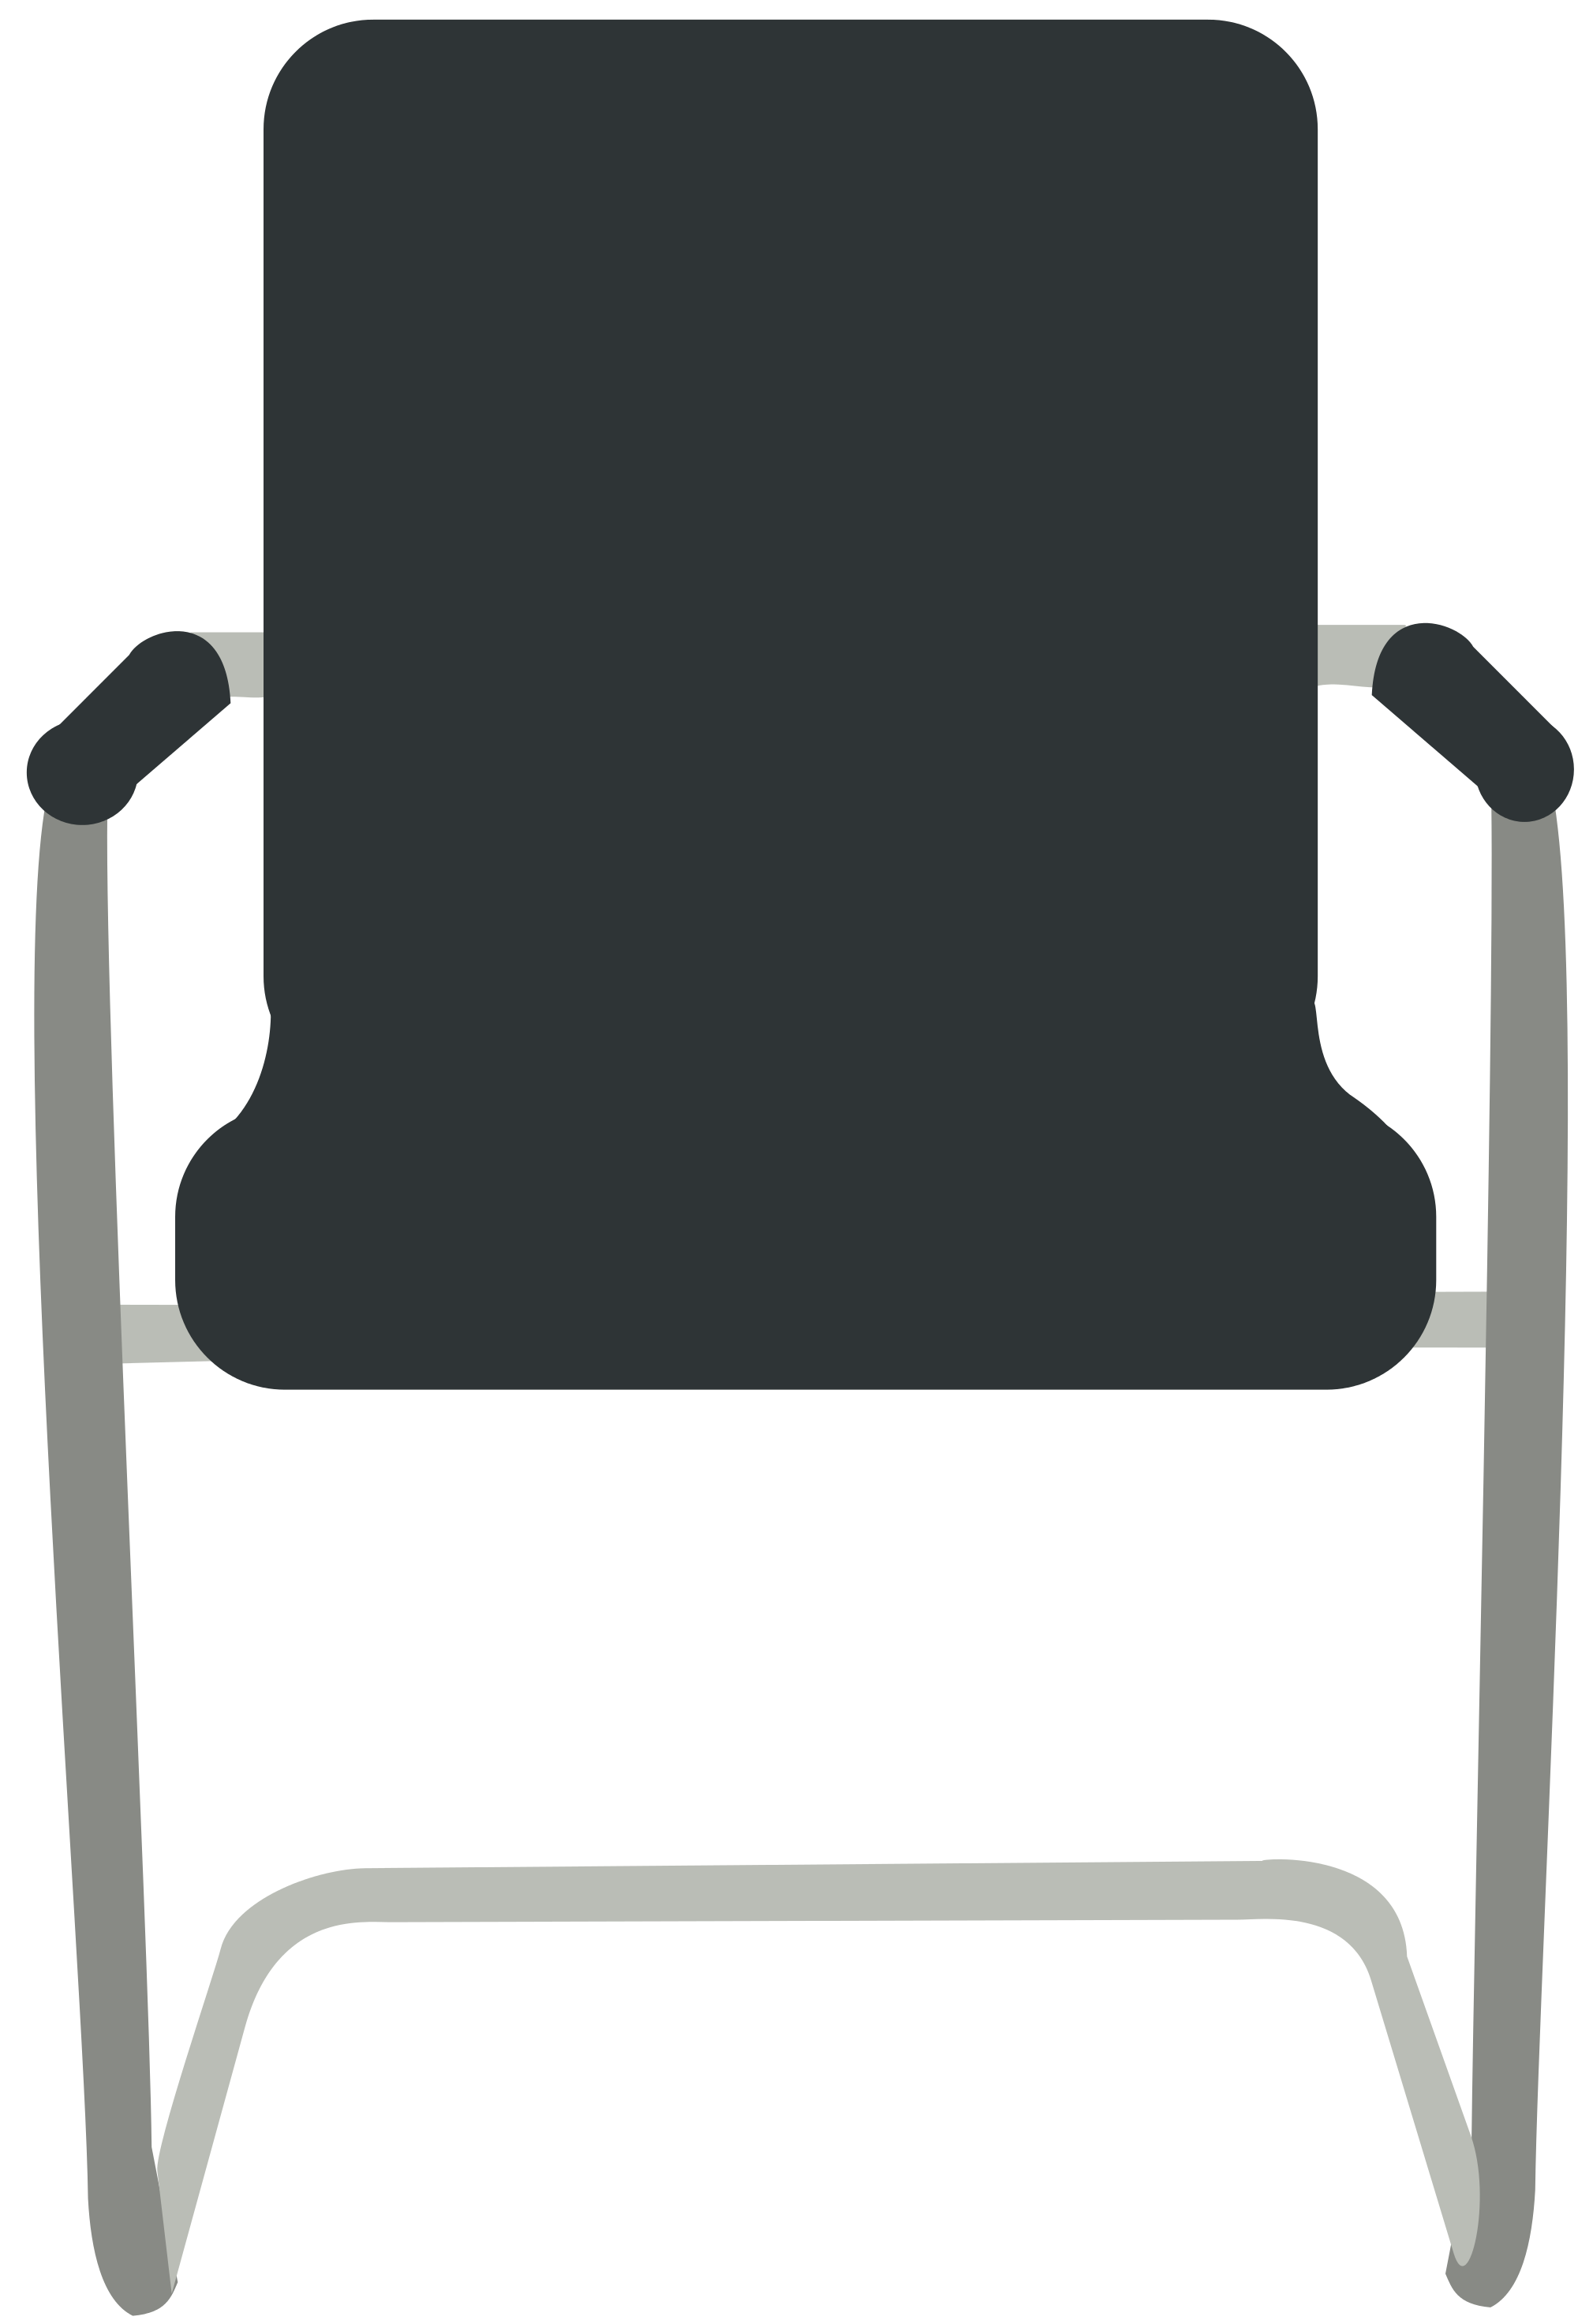 image transparent library Chair clipart svg. File desk wikimedia commons.